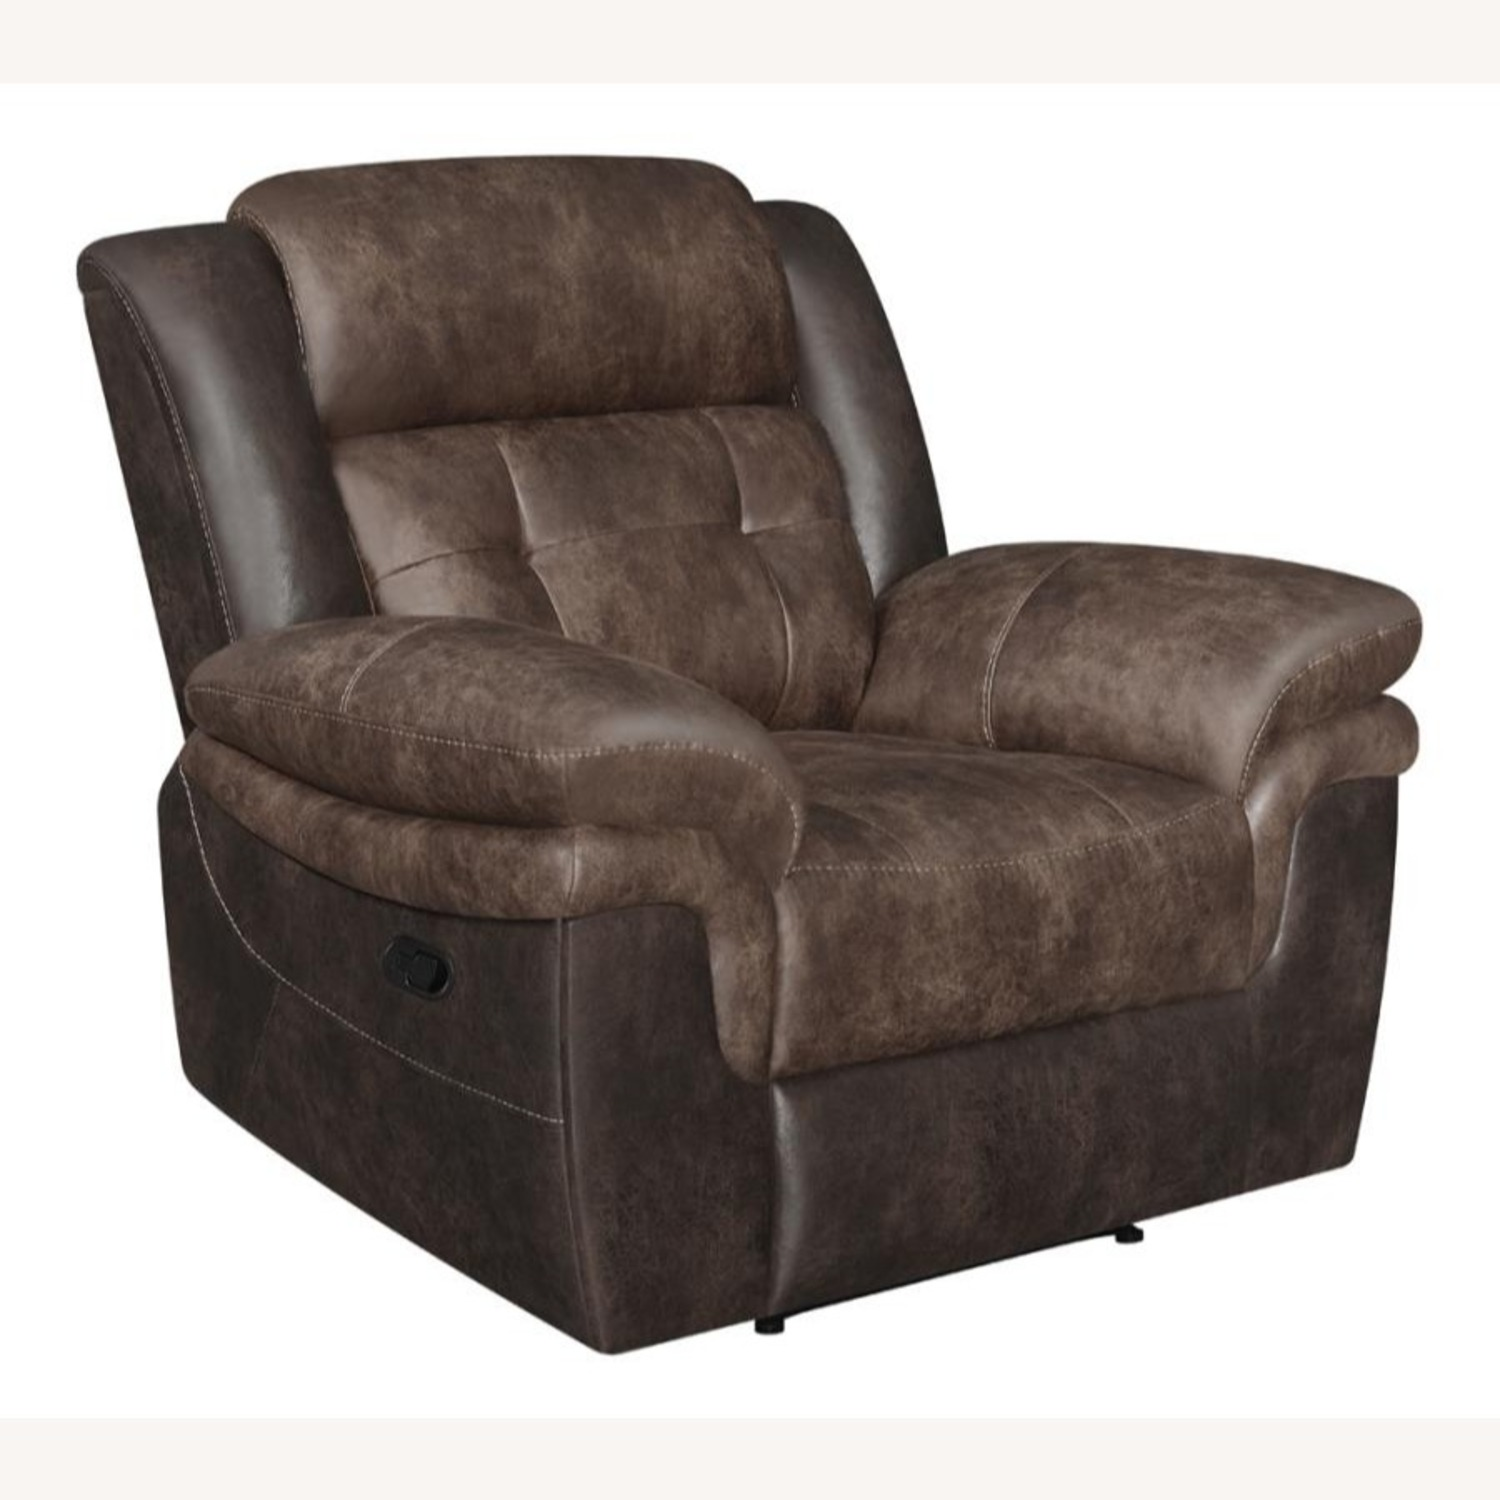 Recliner In Chocolate & Dark Brown Upholstery - image-0